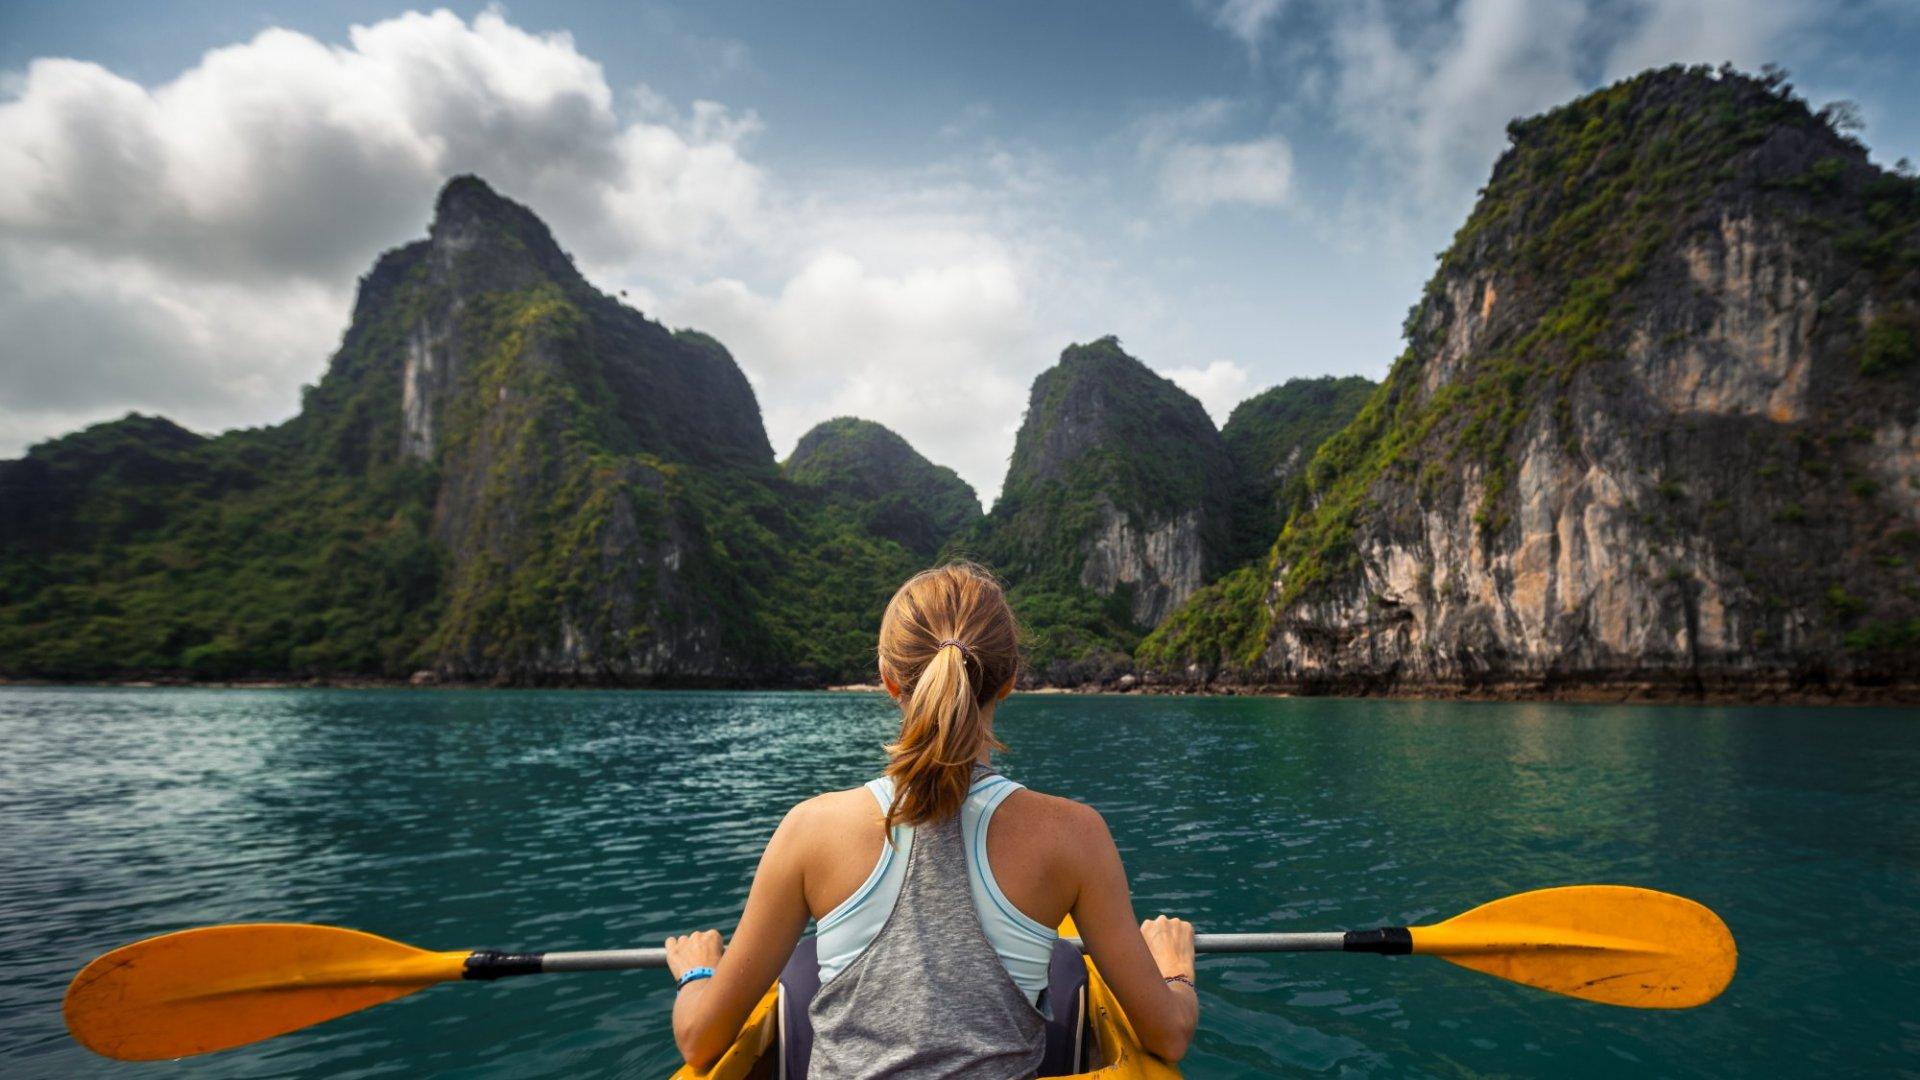 The Top 5 Reason Every Entrepreneur Needs to Travel More